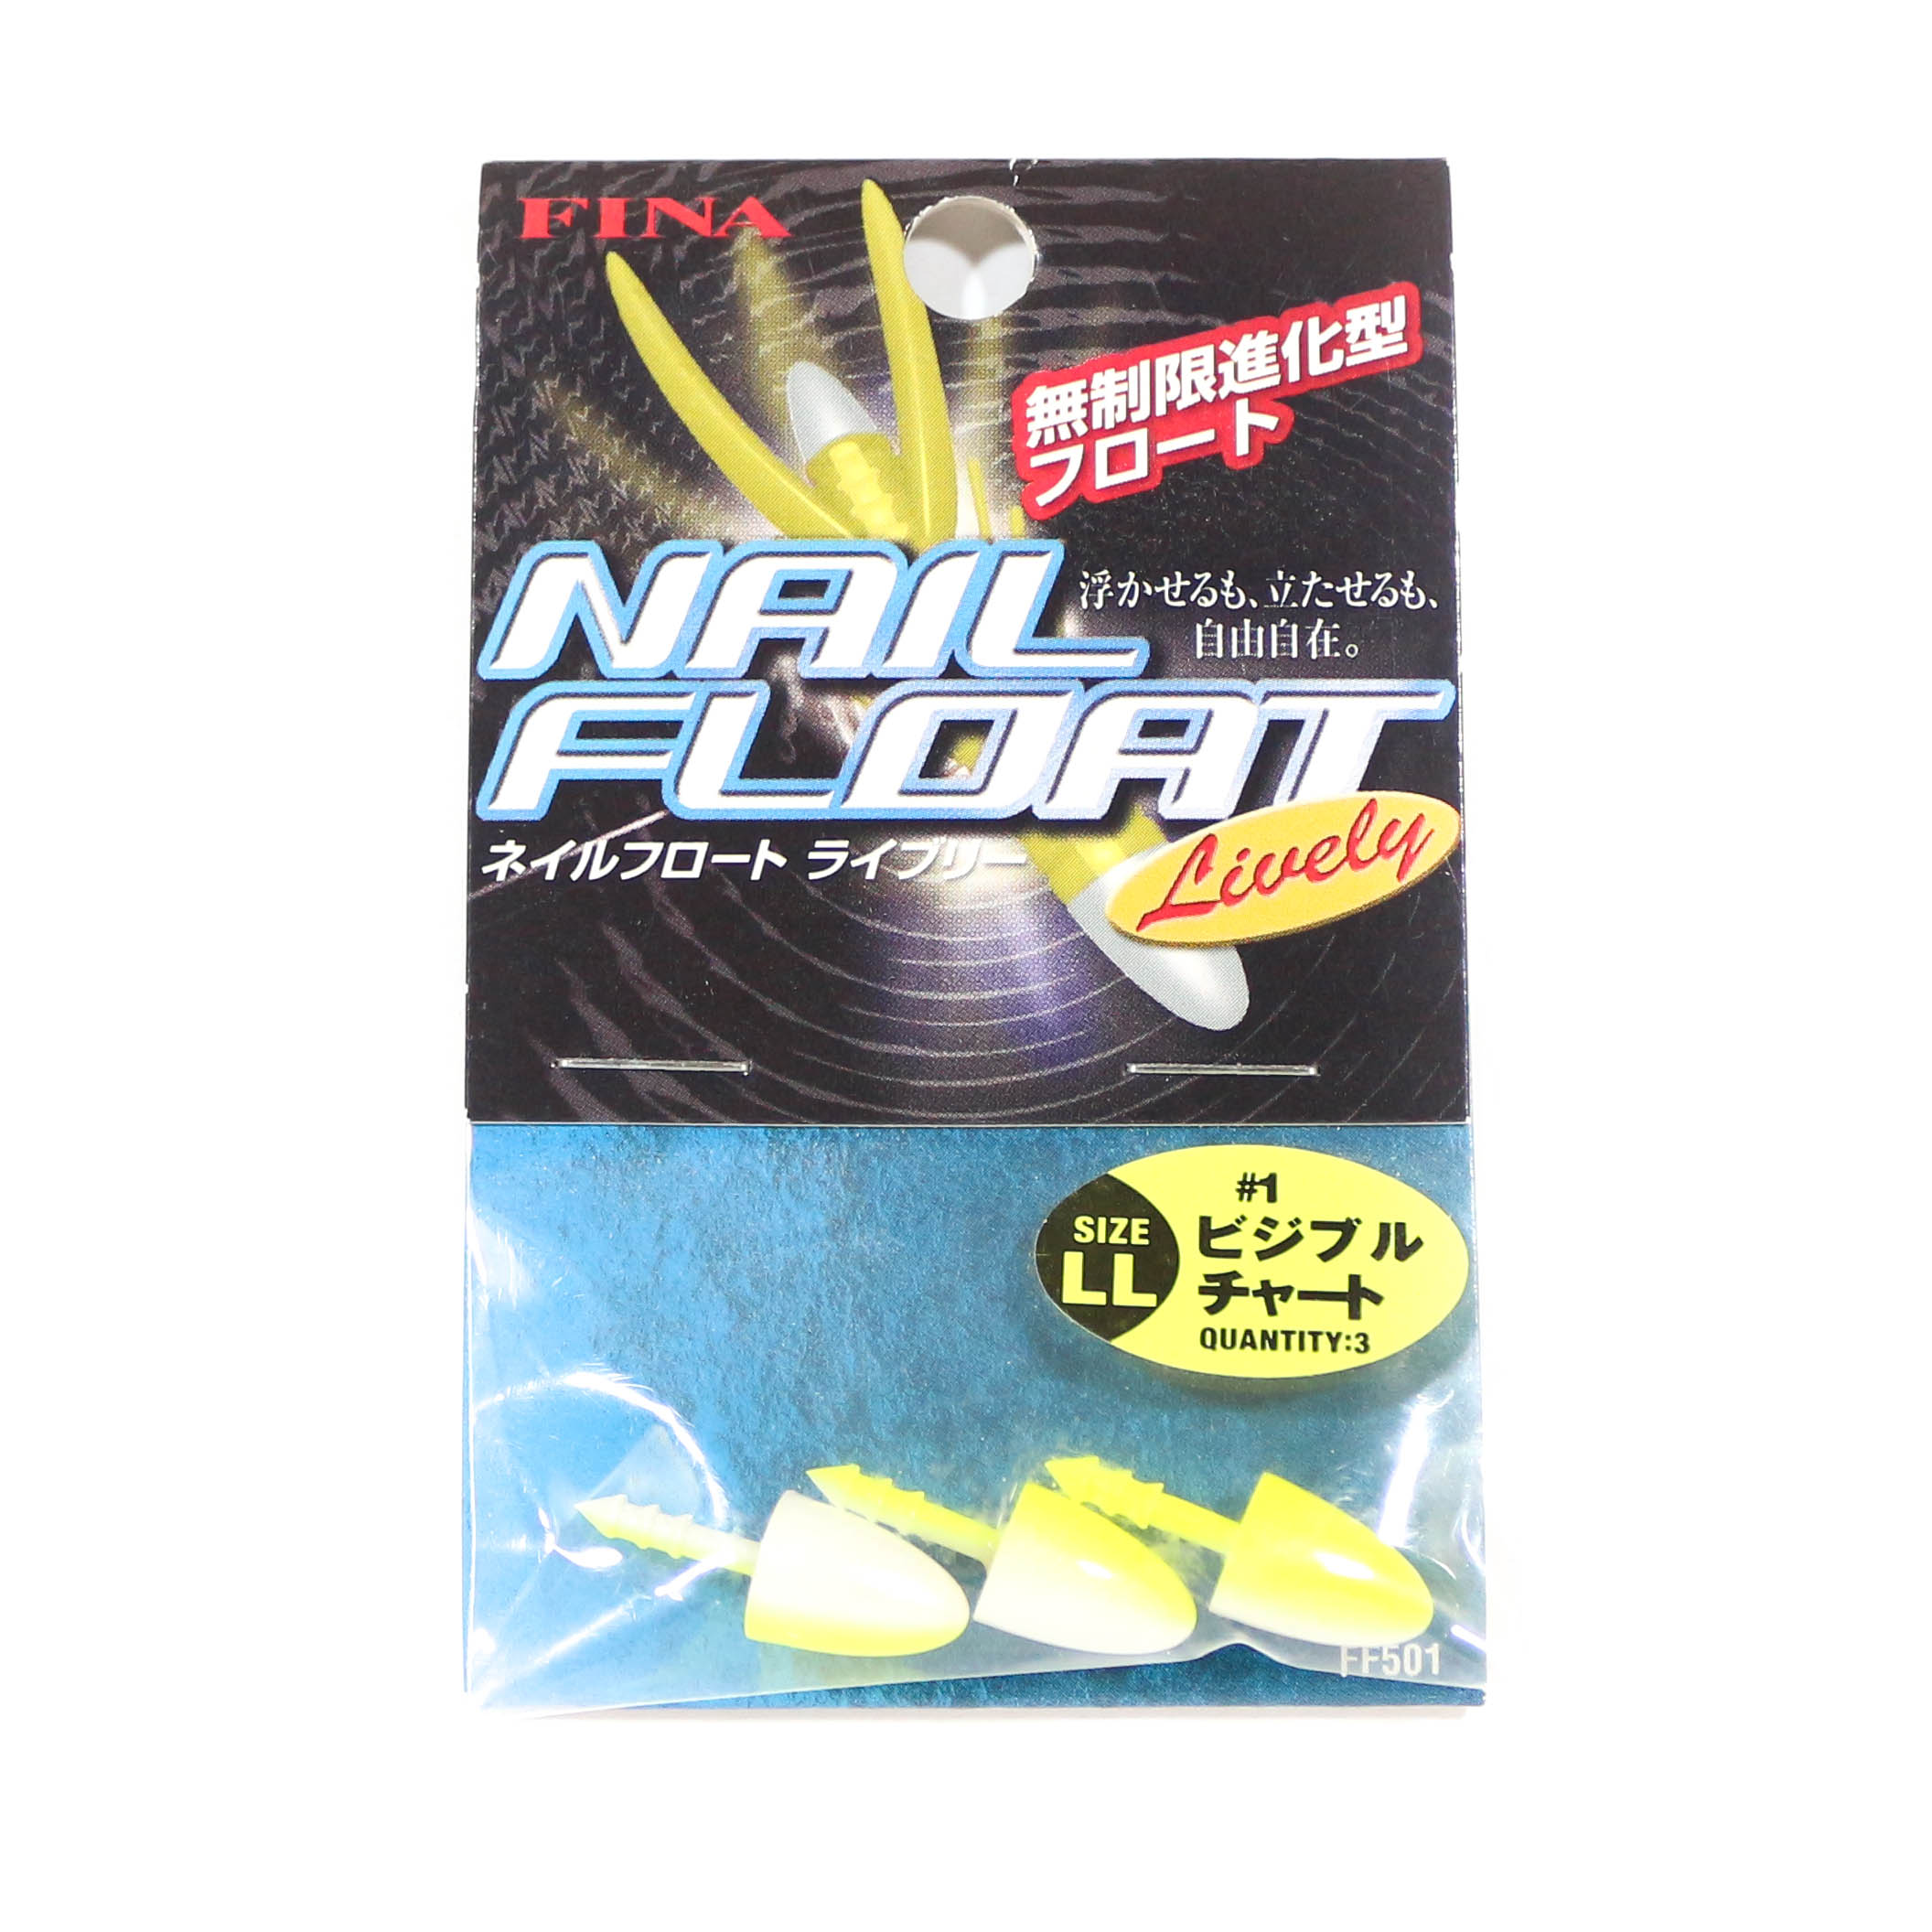 Fina FF501 Nail Float Lively Size LL for Hook Size 1 Yellow (7496)